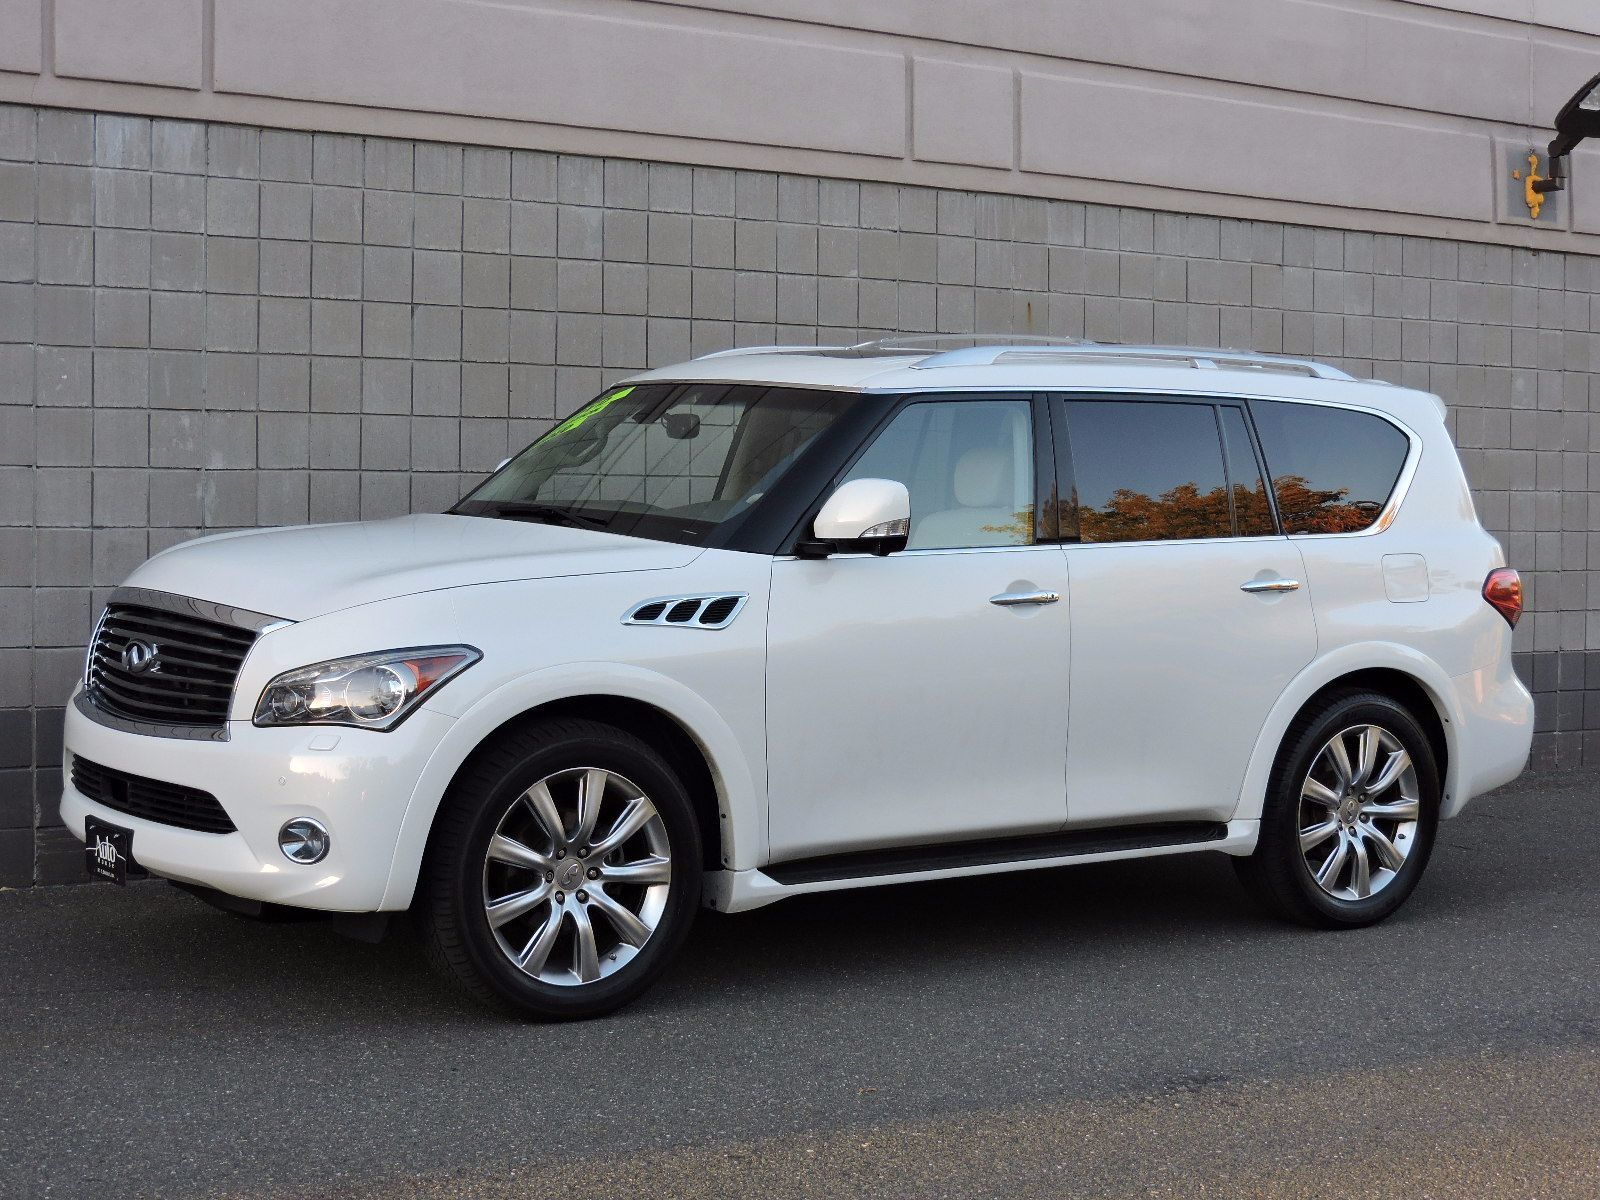 infiniti left news infinity side four sale overview update july seasons view for